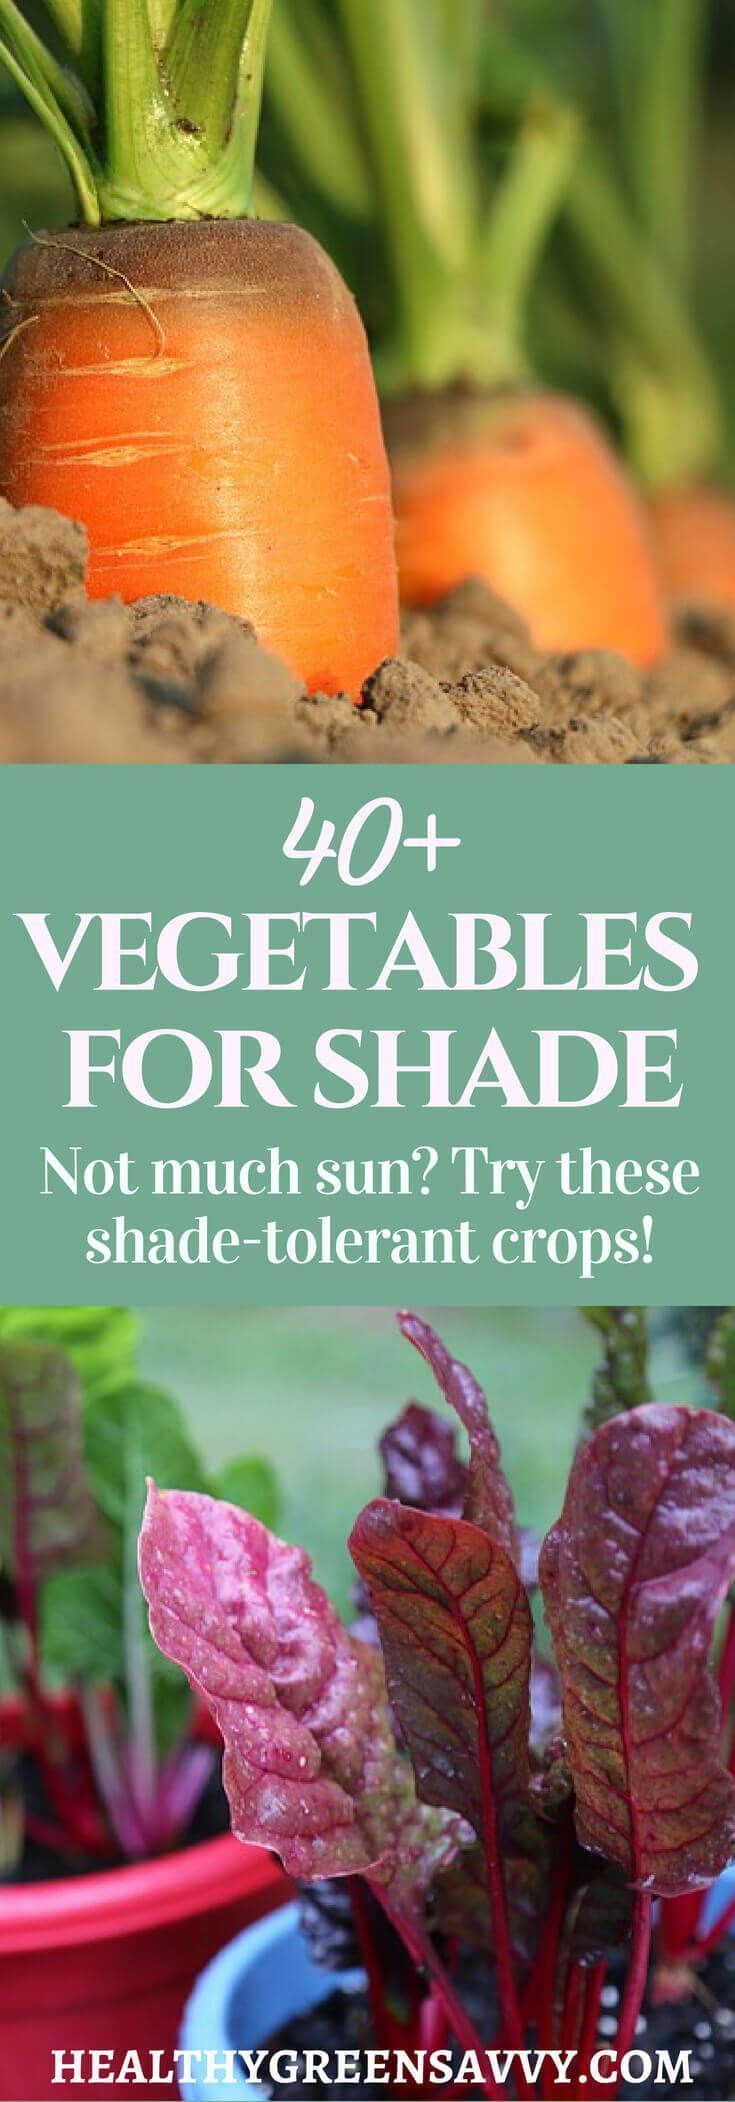 40+ Vegetables that Grow in Shade #shadecontainergardenideas